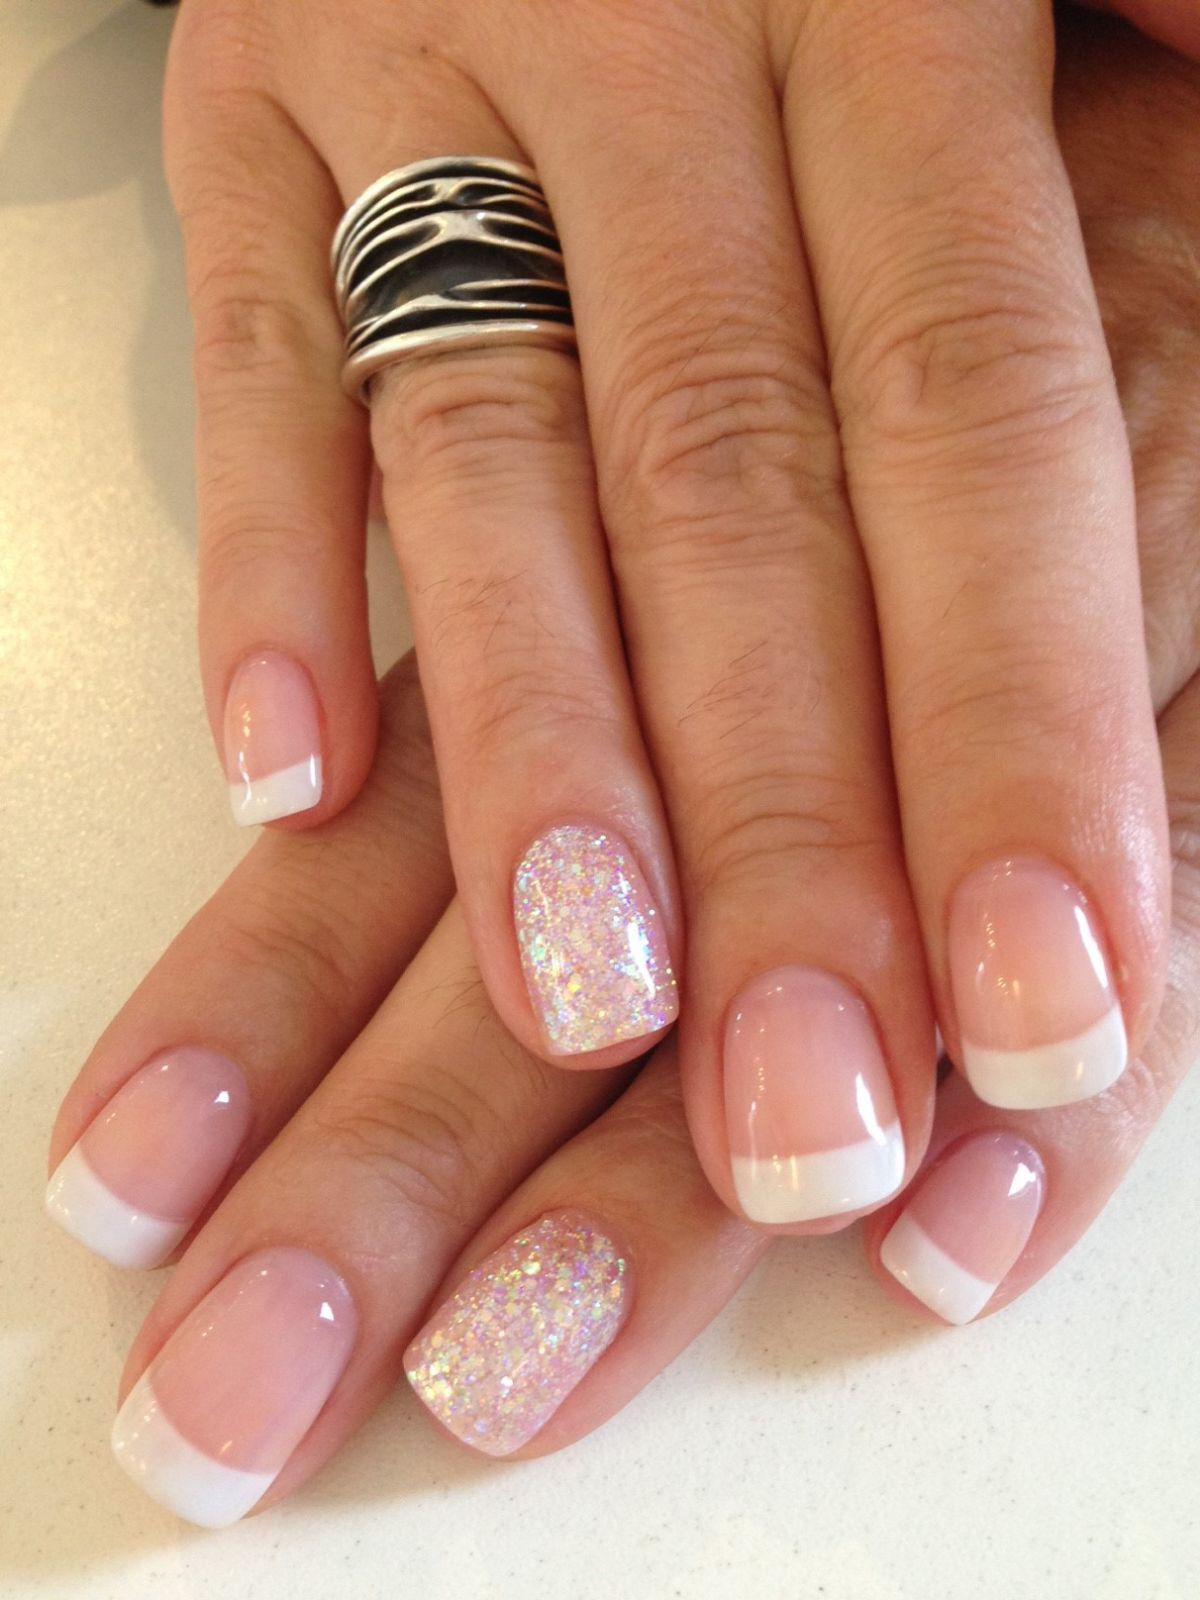 French tip nails with a glitter ring ringer more belleza en